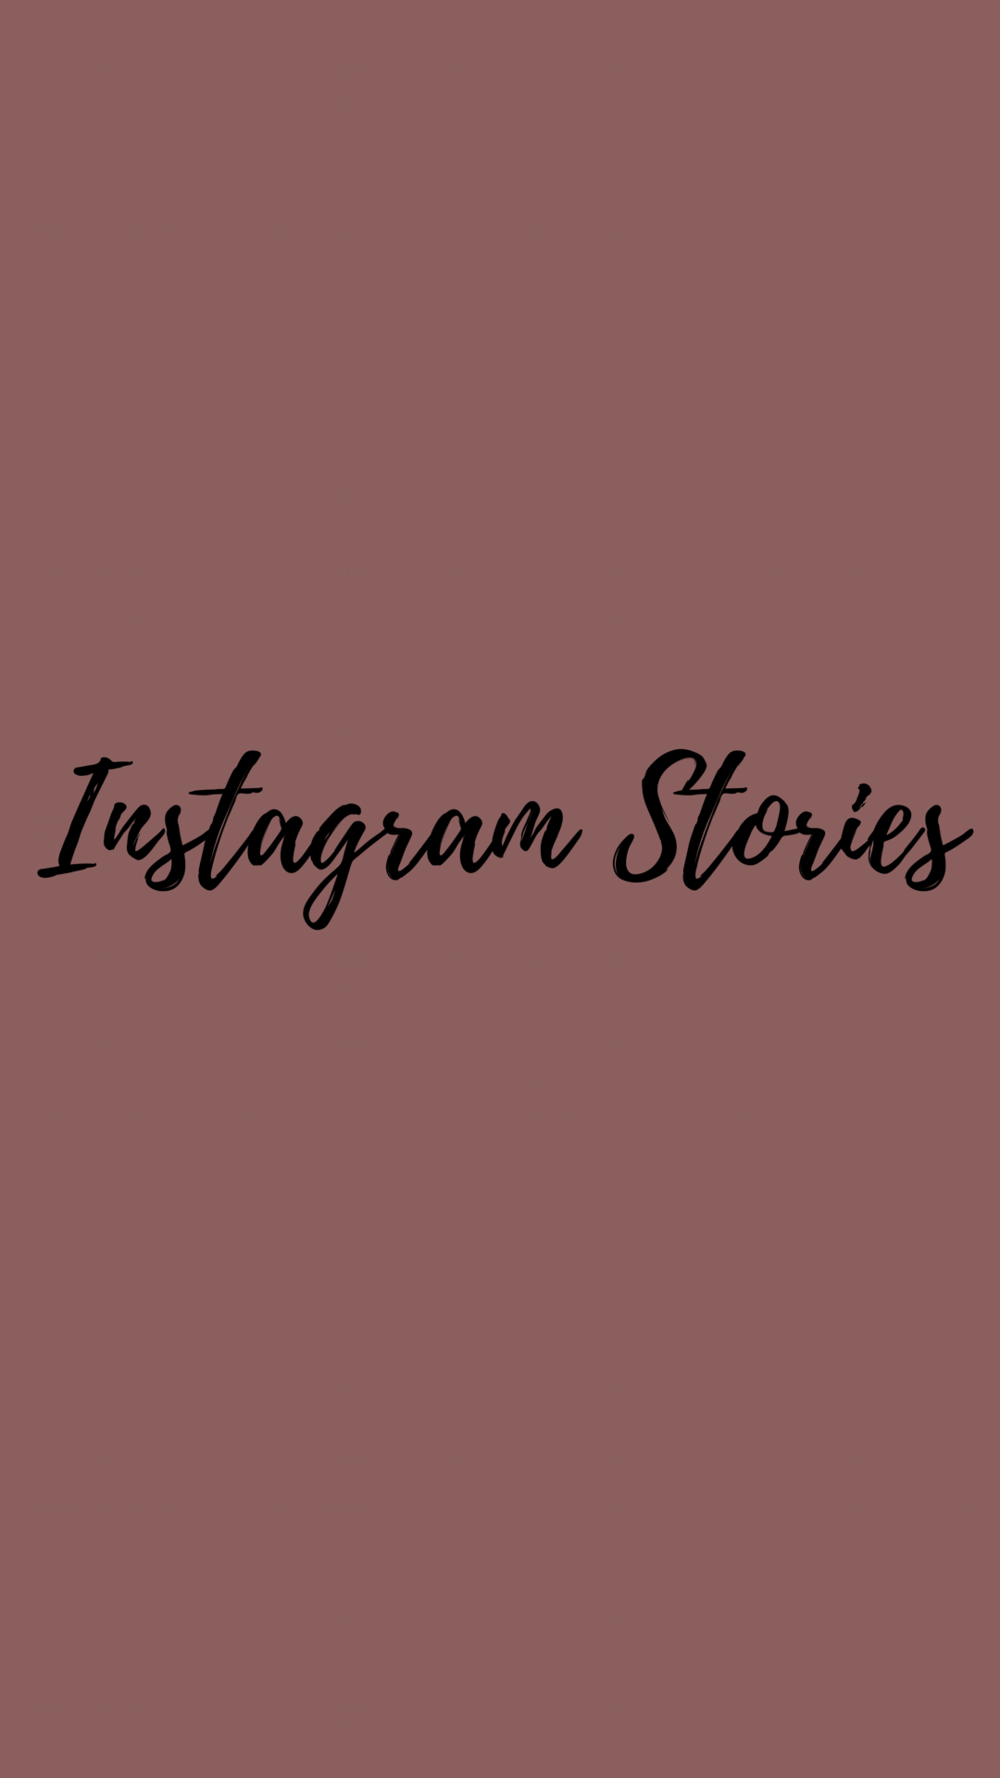 Instagram Stories For Your Business